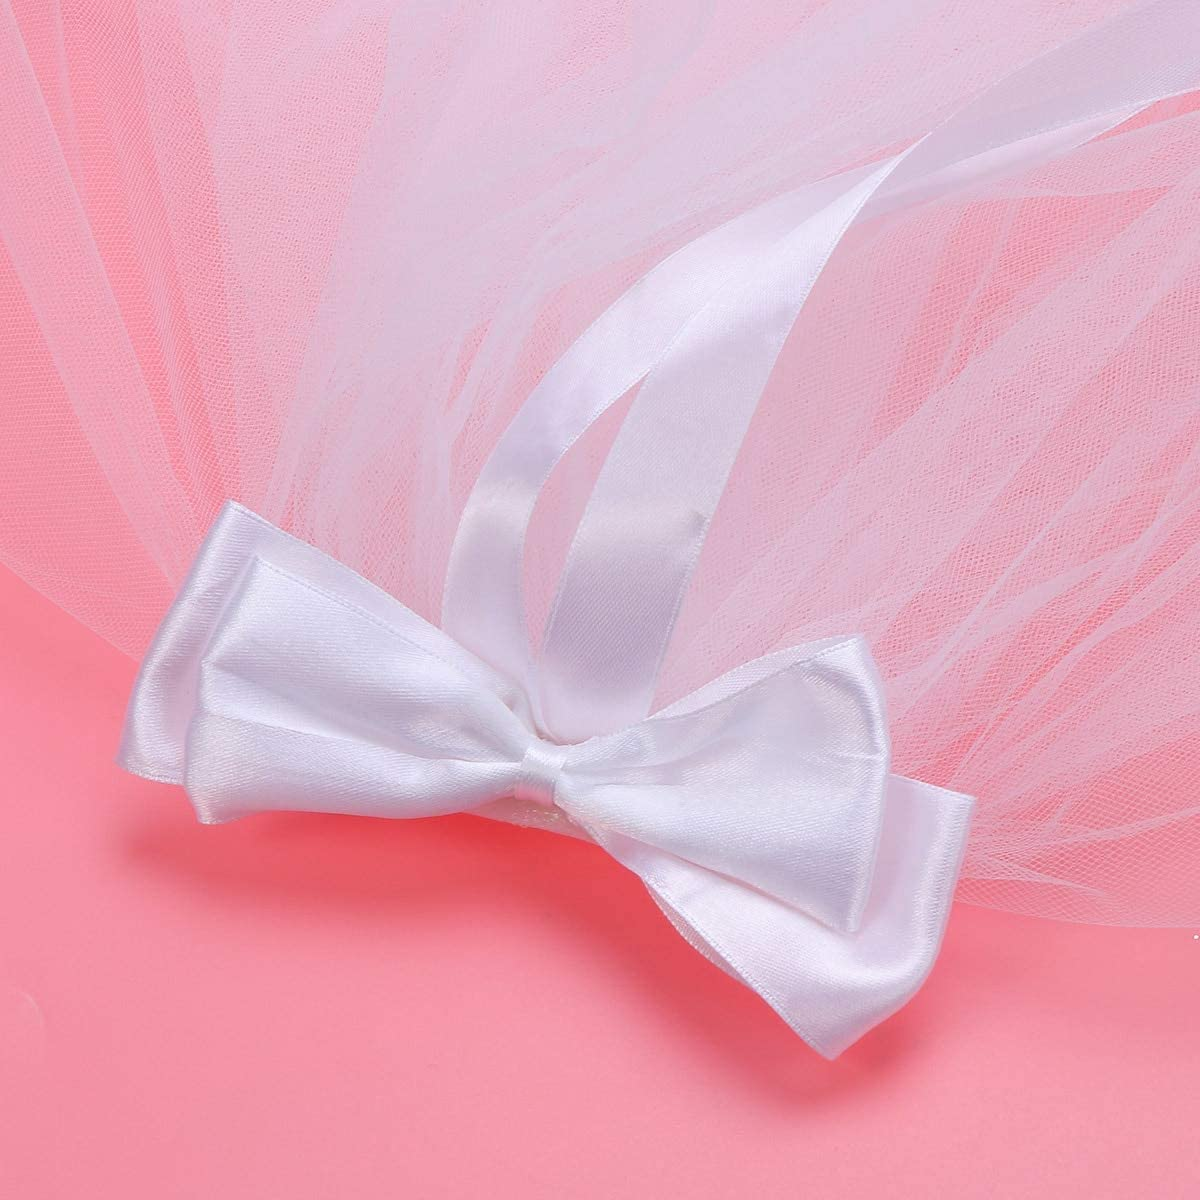 LoLa Ling Four Layers White Bowknot Delicate Flower Girl Veils Wedding Veils Lace Veils for Cosplay Communion Engagement Photography